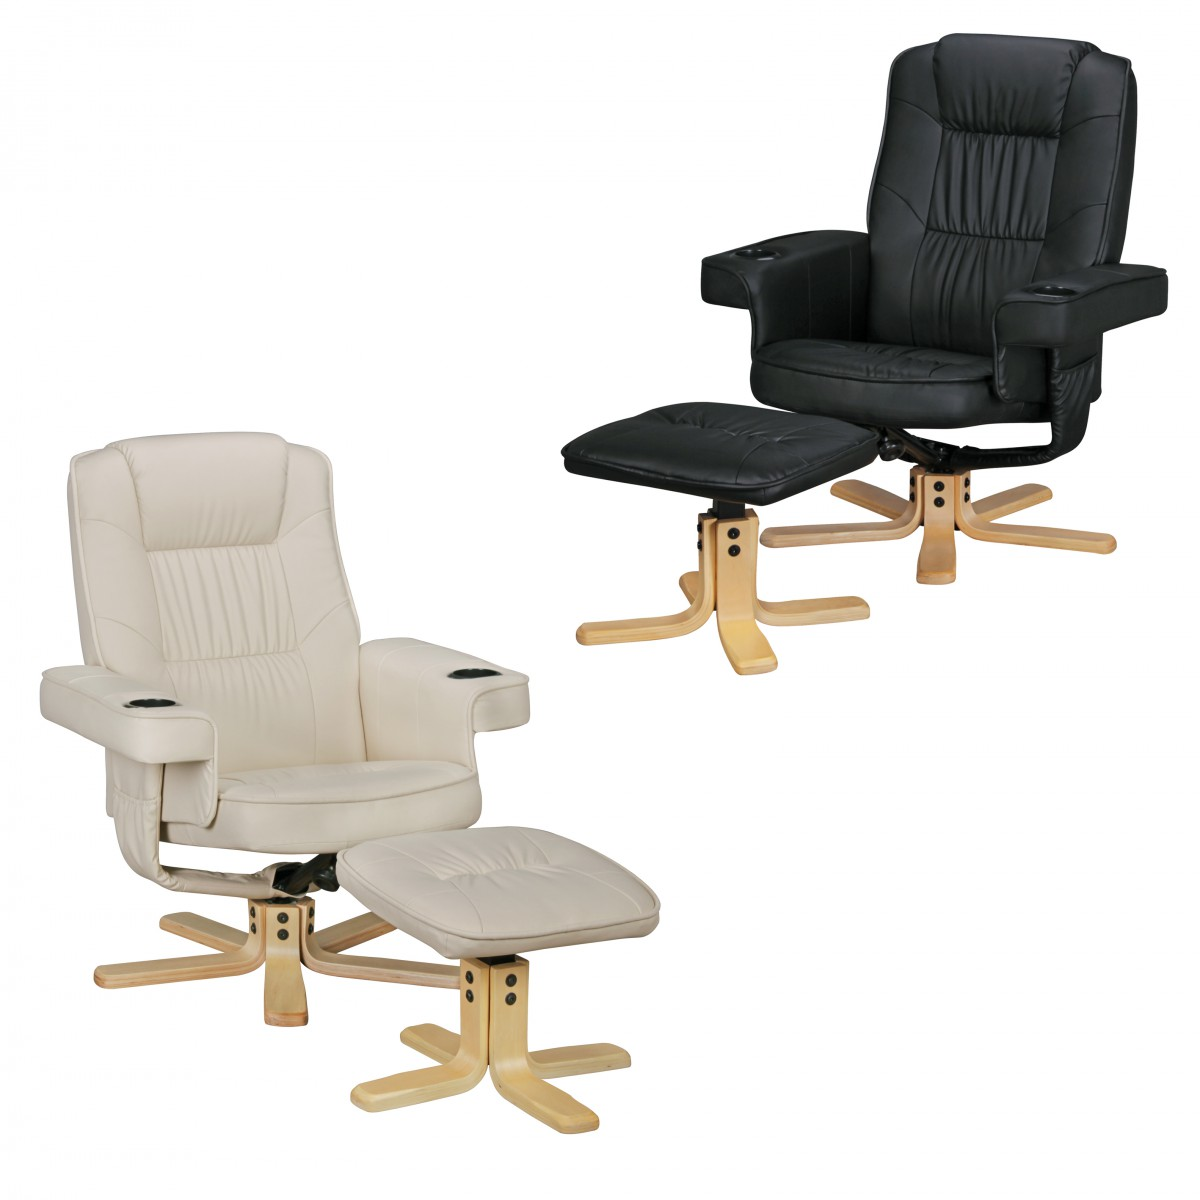 Relaxsessel Mit Hocker Relaxstuhl Mit Hocker Relax Duo Tv Sessel Fußablage Fernsehsessel Relaxsessel